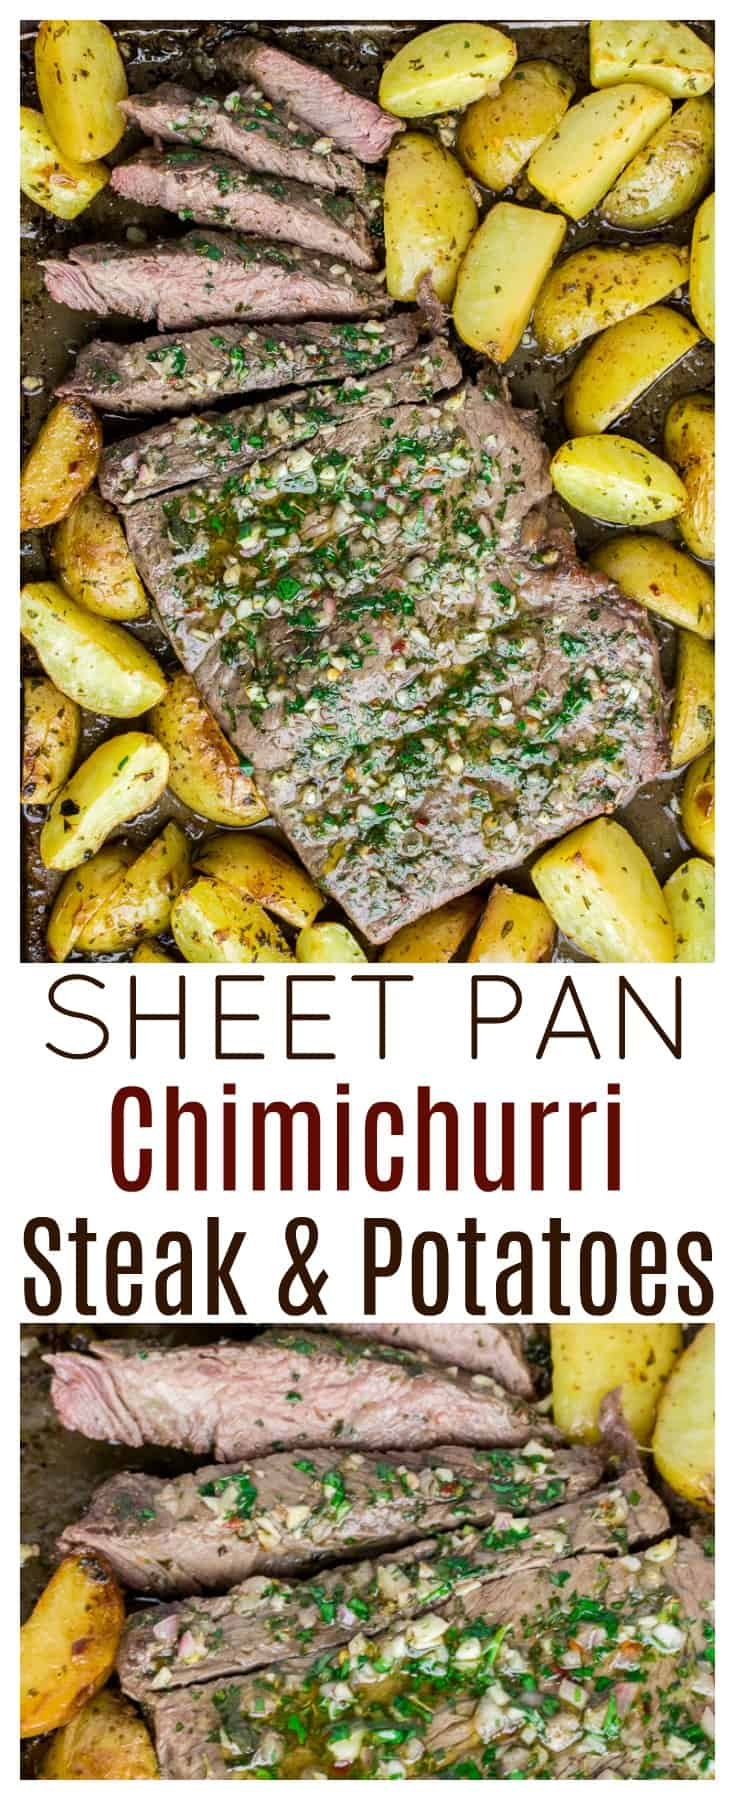 Sheet Pan Chimichurri Steak and Potatoes - an incredibly flavorful, yet surprisingly simple, sheet pan dinner recipe that the whole family will enjoy! | #ad #dlbrecipes #sealtosavor #chimichurri #sheetpanrecipe